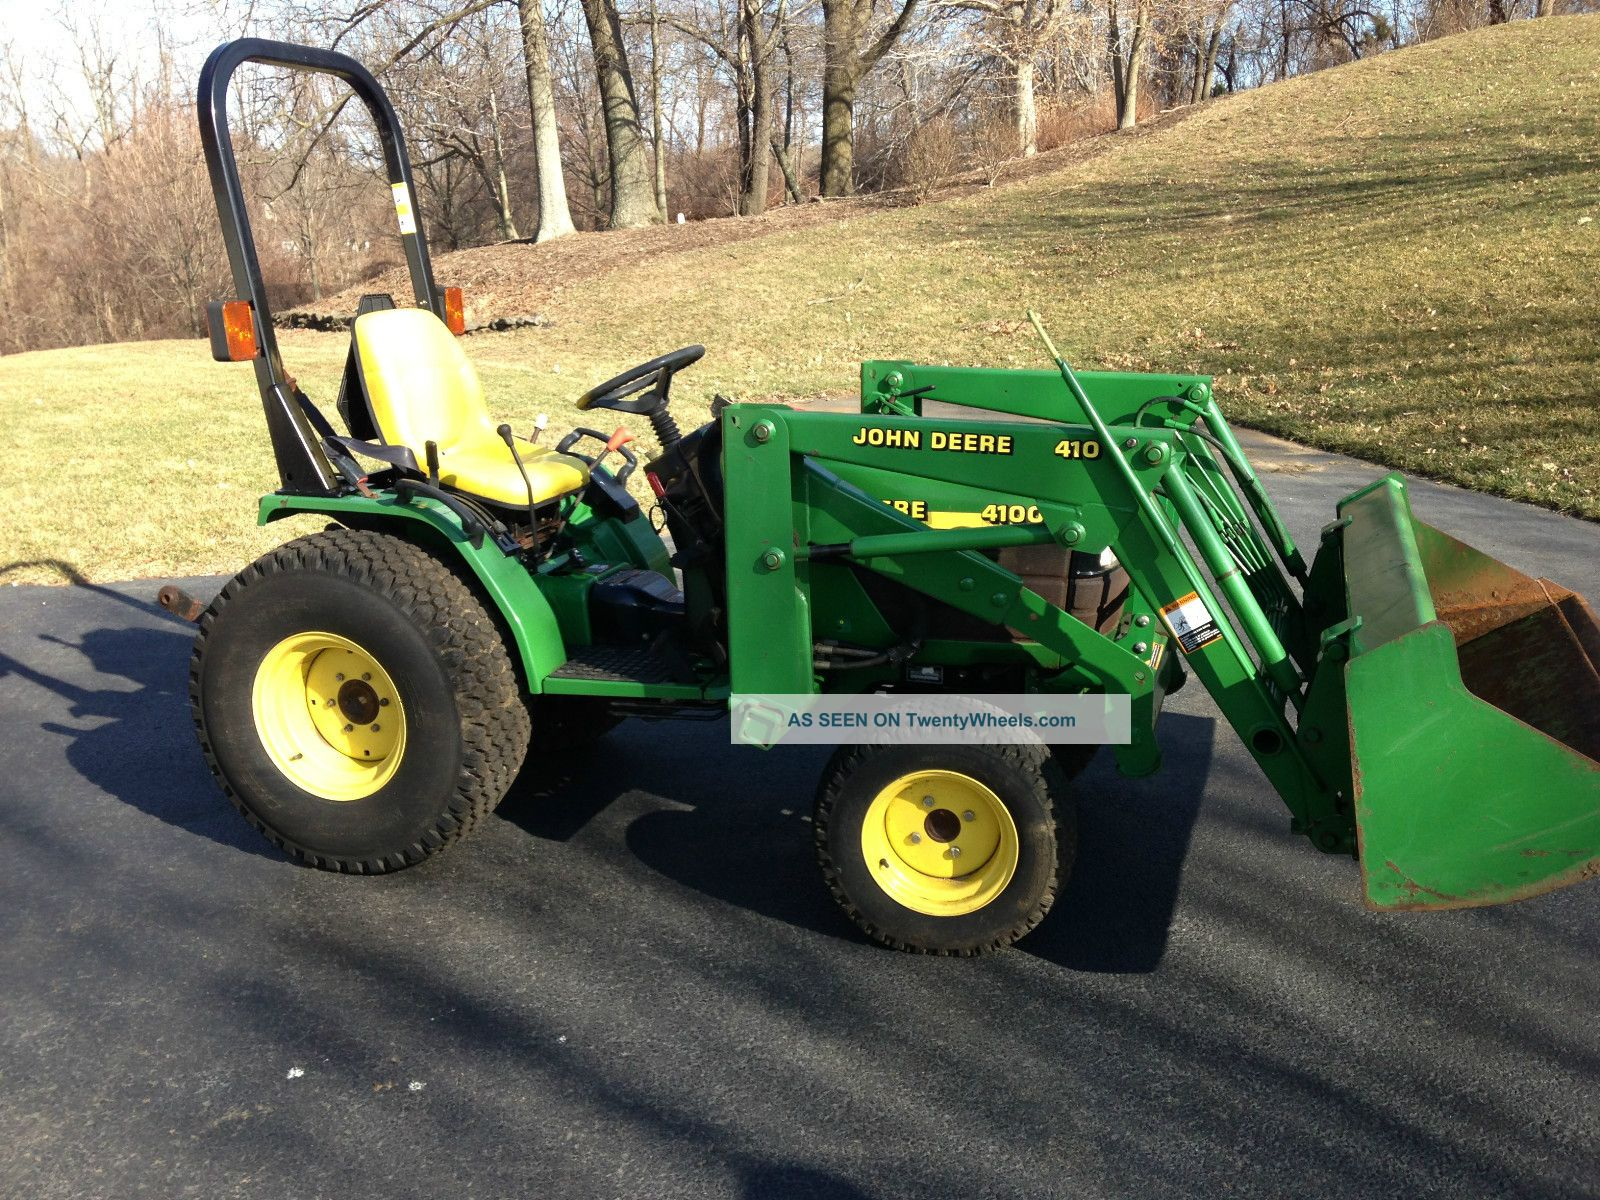 John Deere Lawn Tractor Accessories Lookup Beforebuying Lx172 Wiring Diagram 4100 Attachments